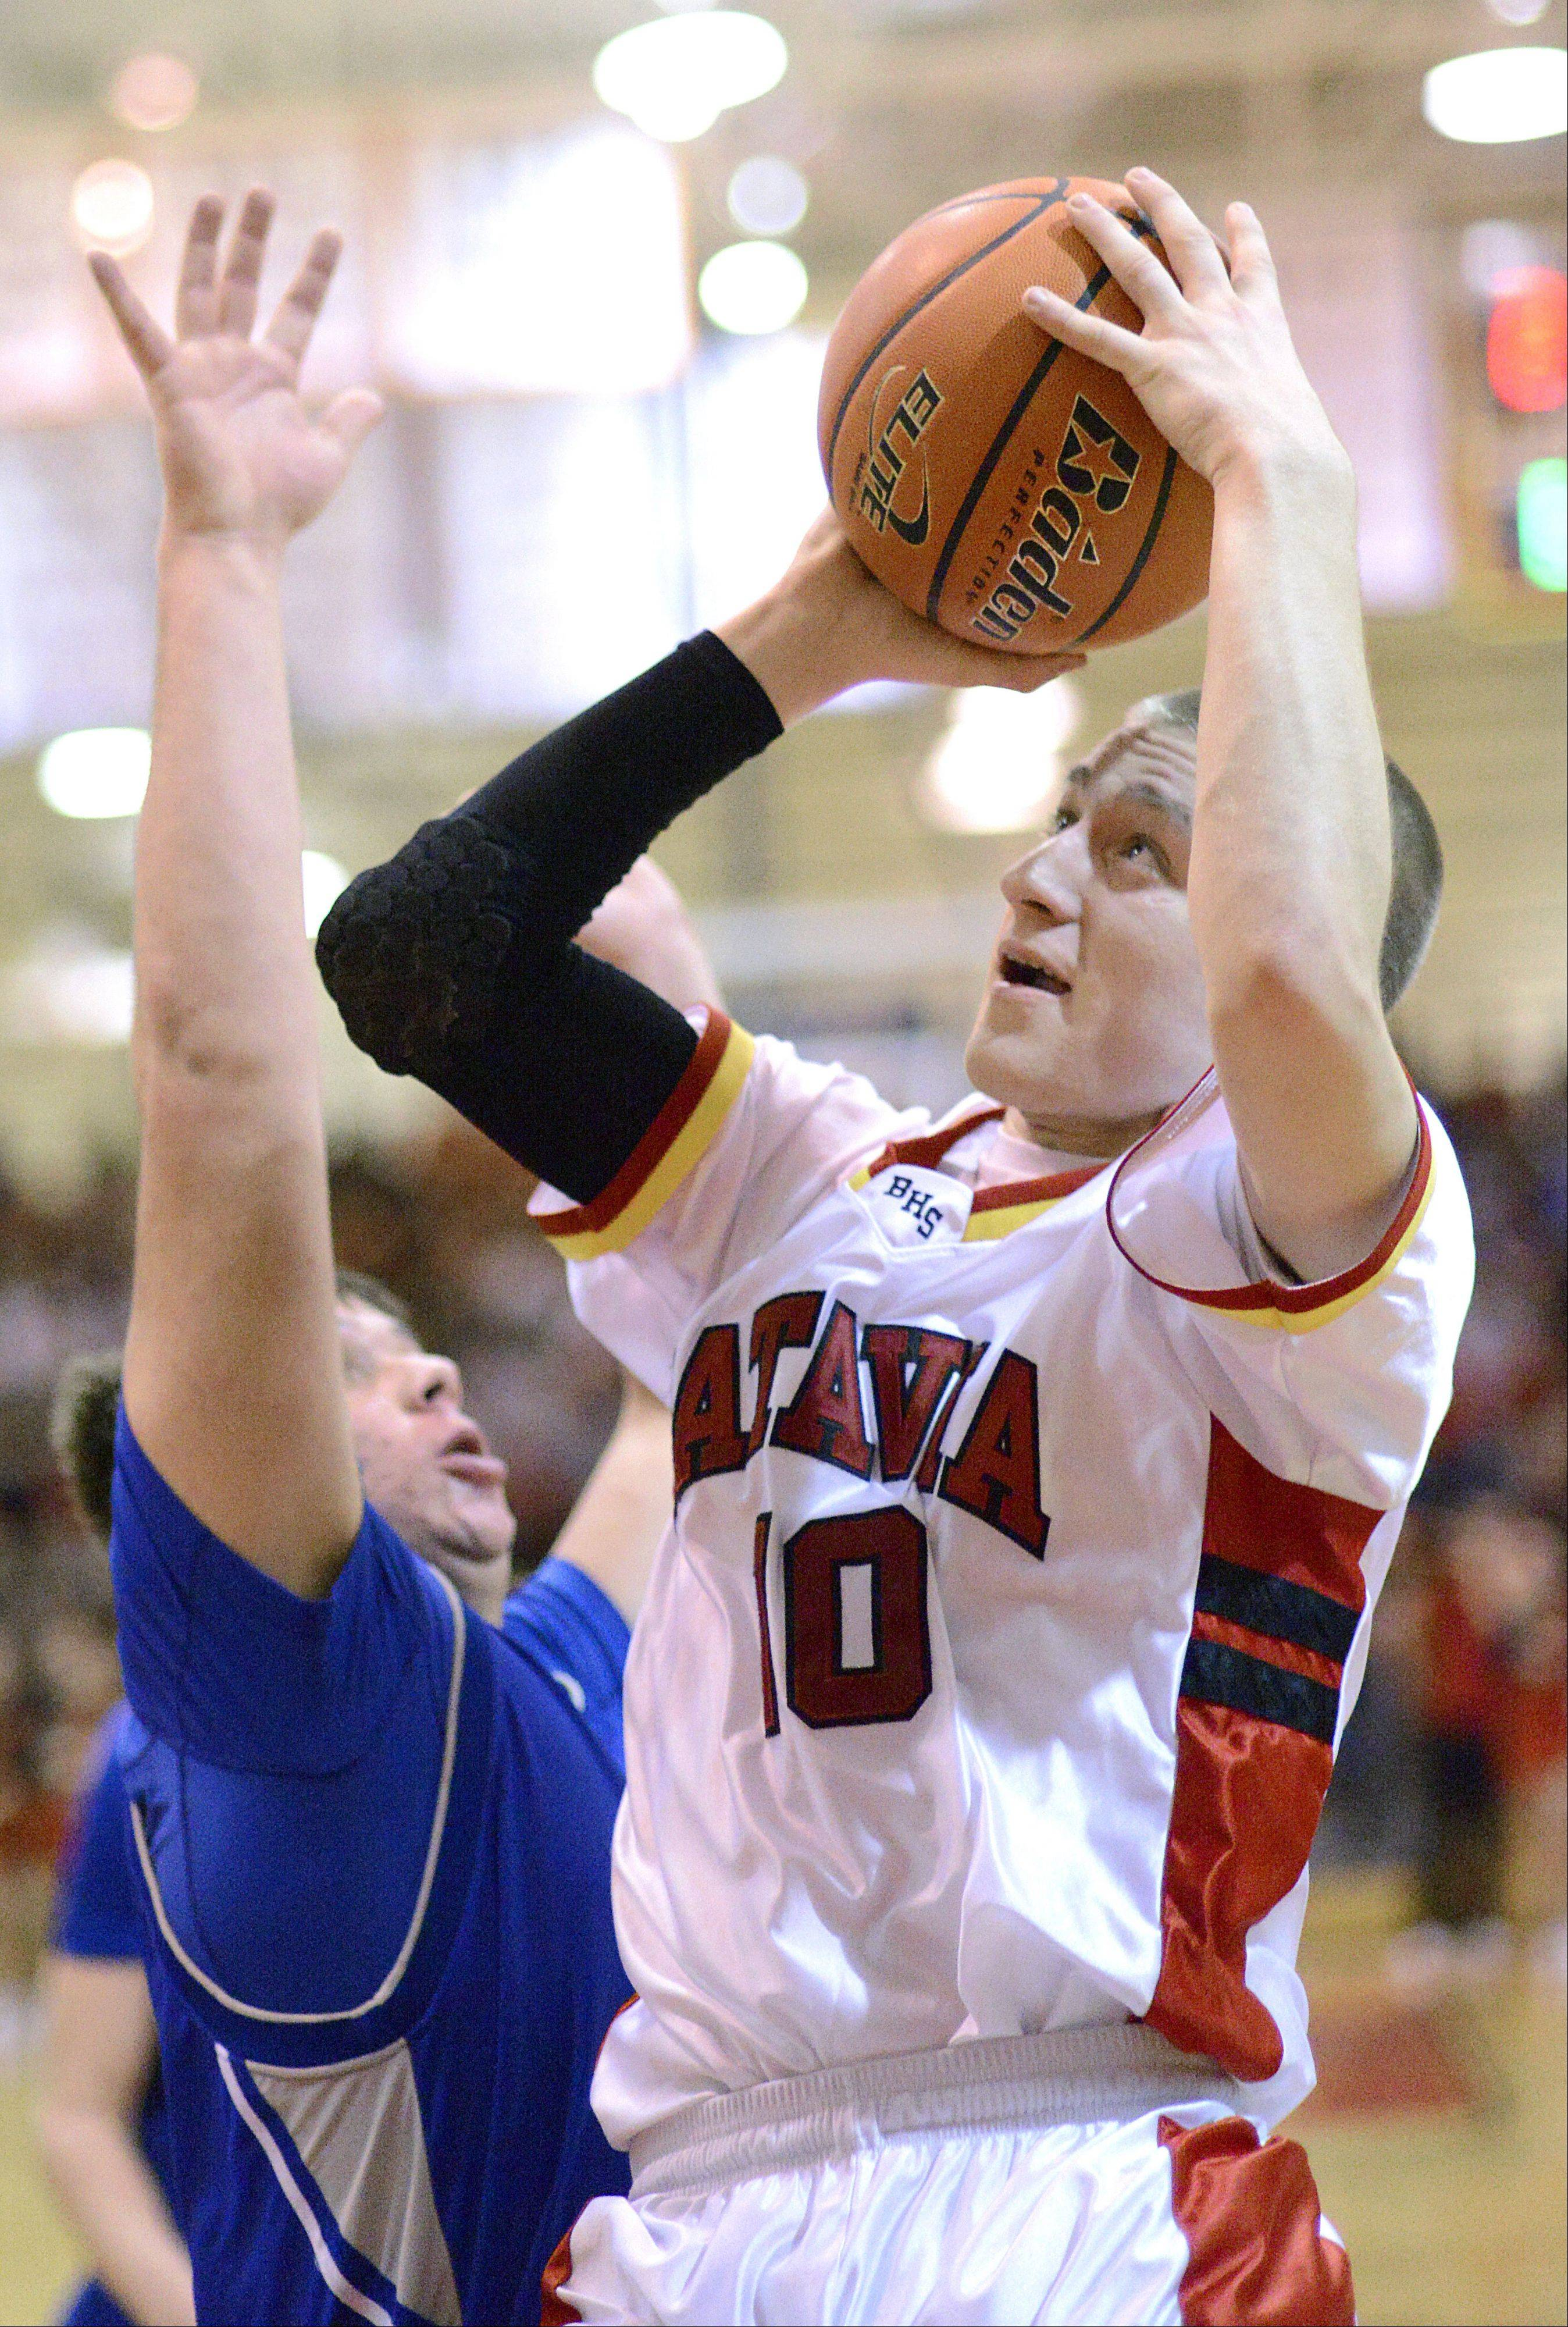 Batavia's Mike Rueffer shoots over a block by Geneva's Connor Chapman in the second quarter on Friday, January 11.